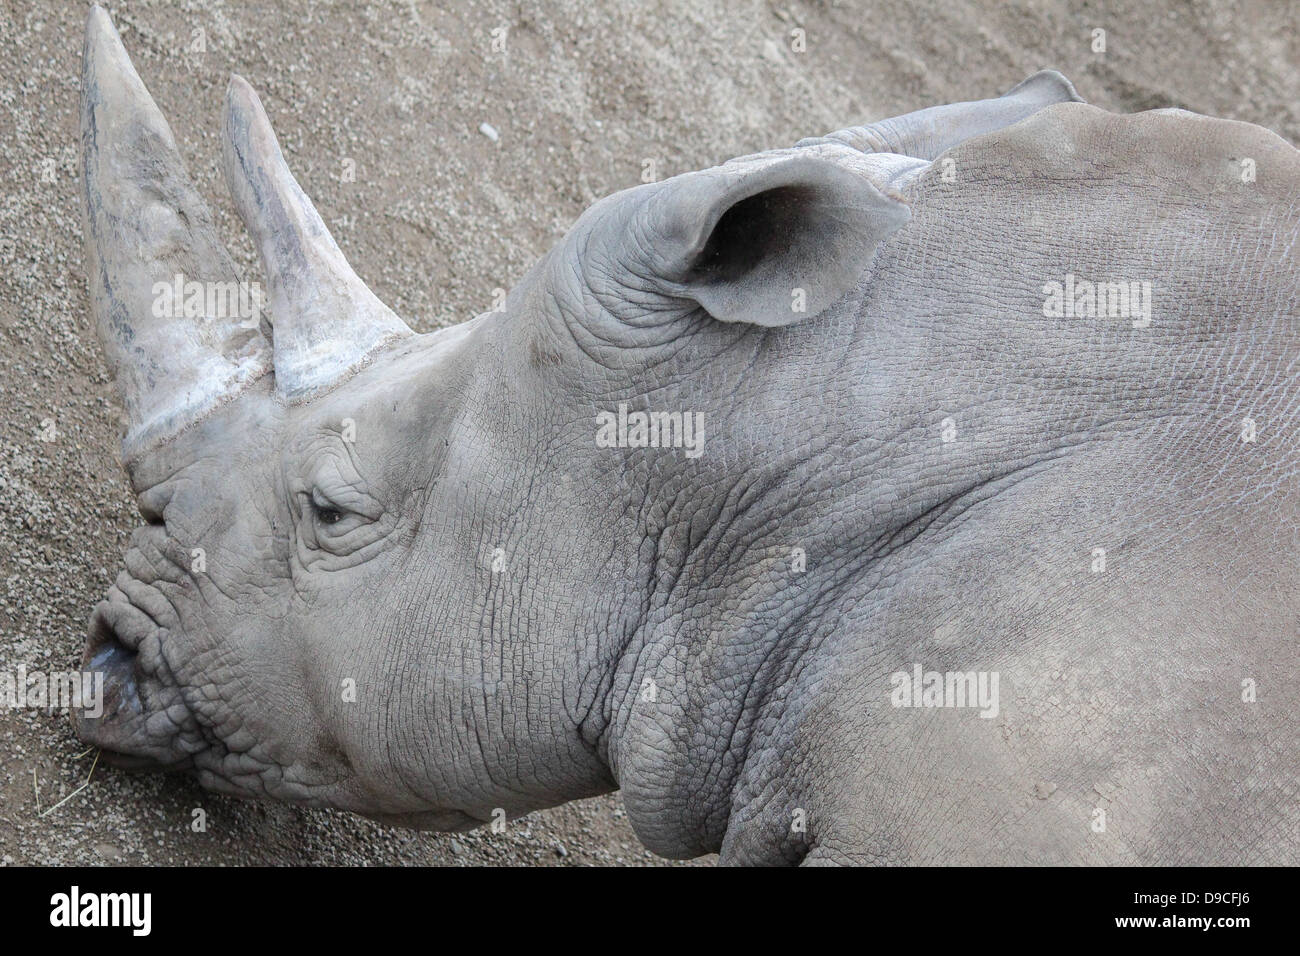 Pictured is a rhinoceros in Dublin Zoo, Ireland. - Stock Image